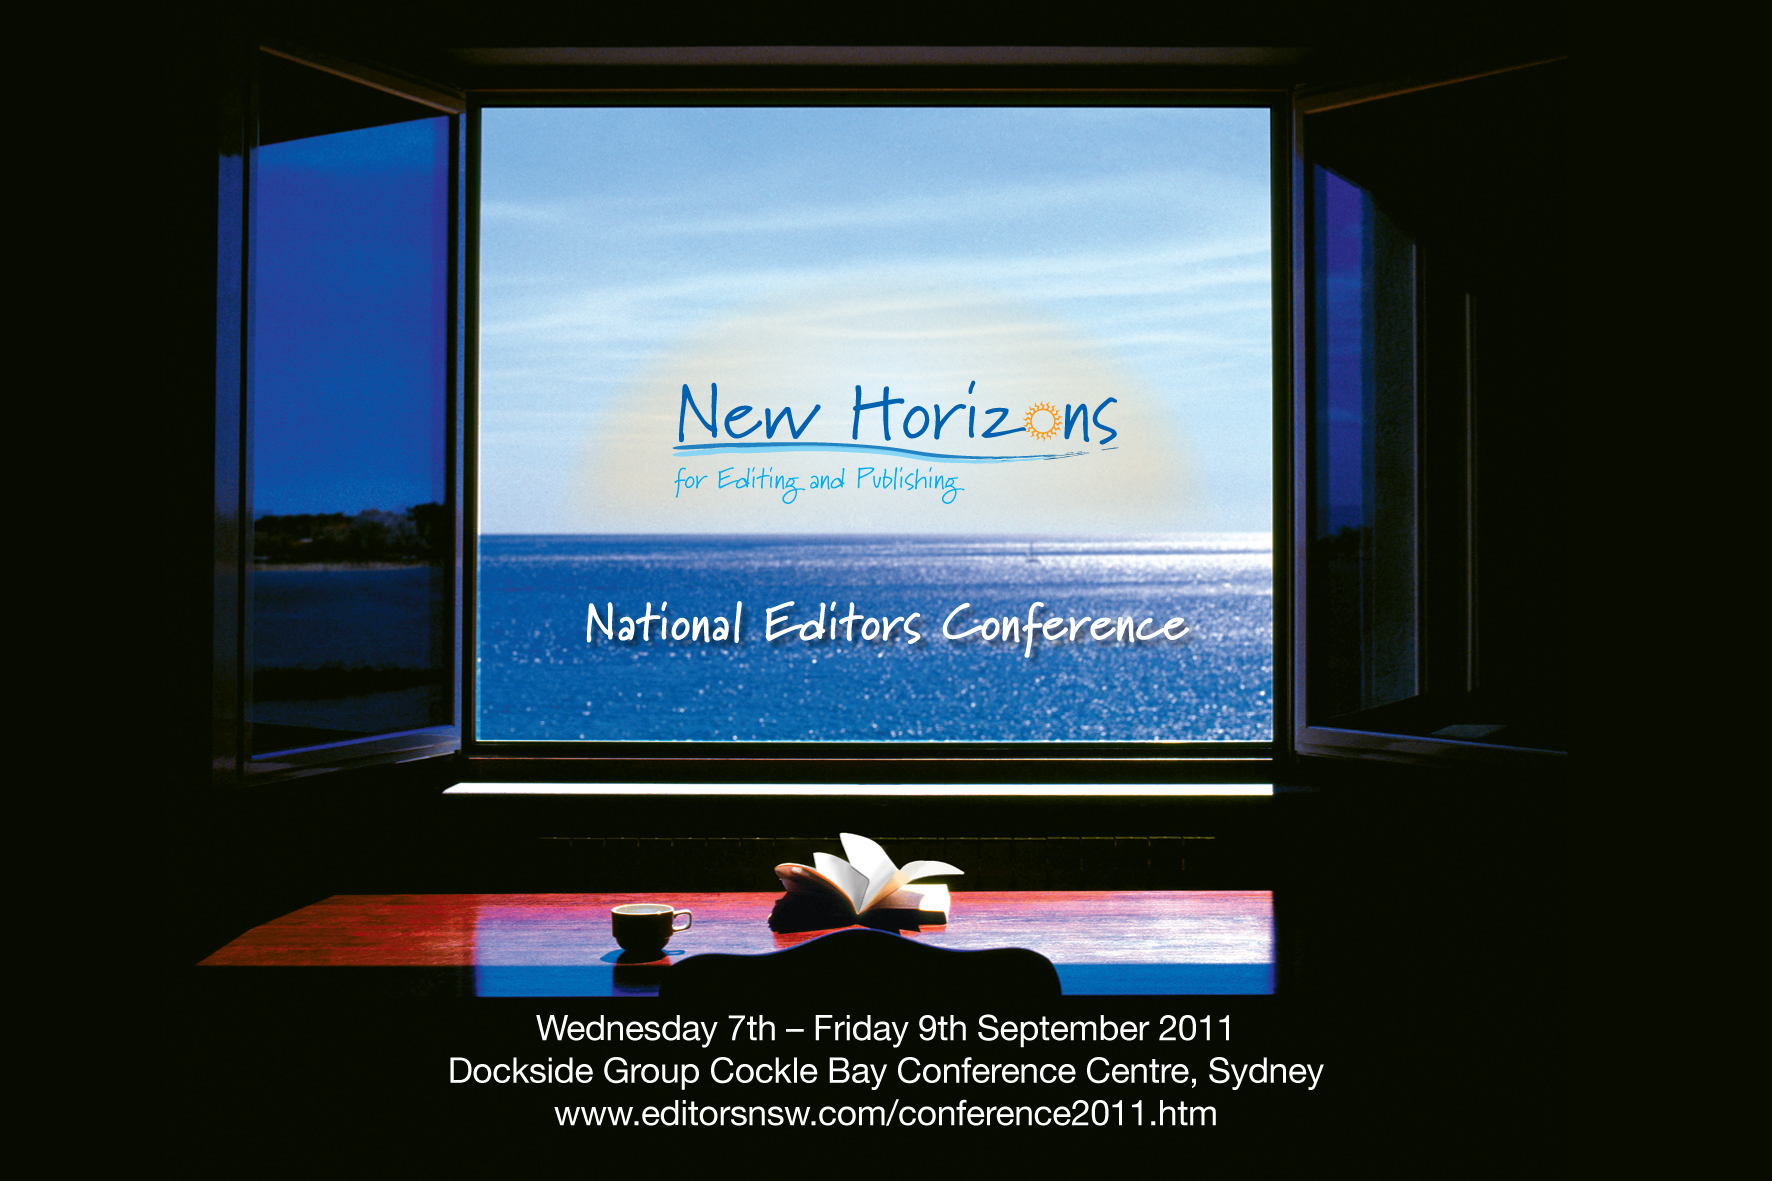 New Horizons for Editing and Publishing